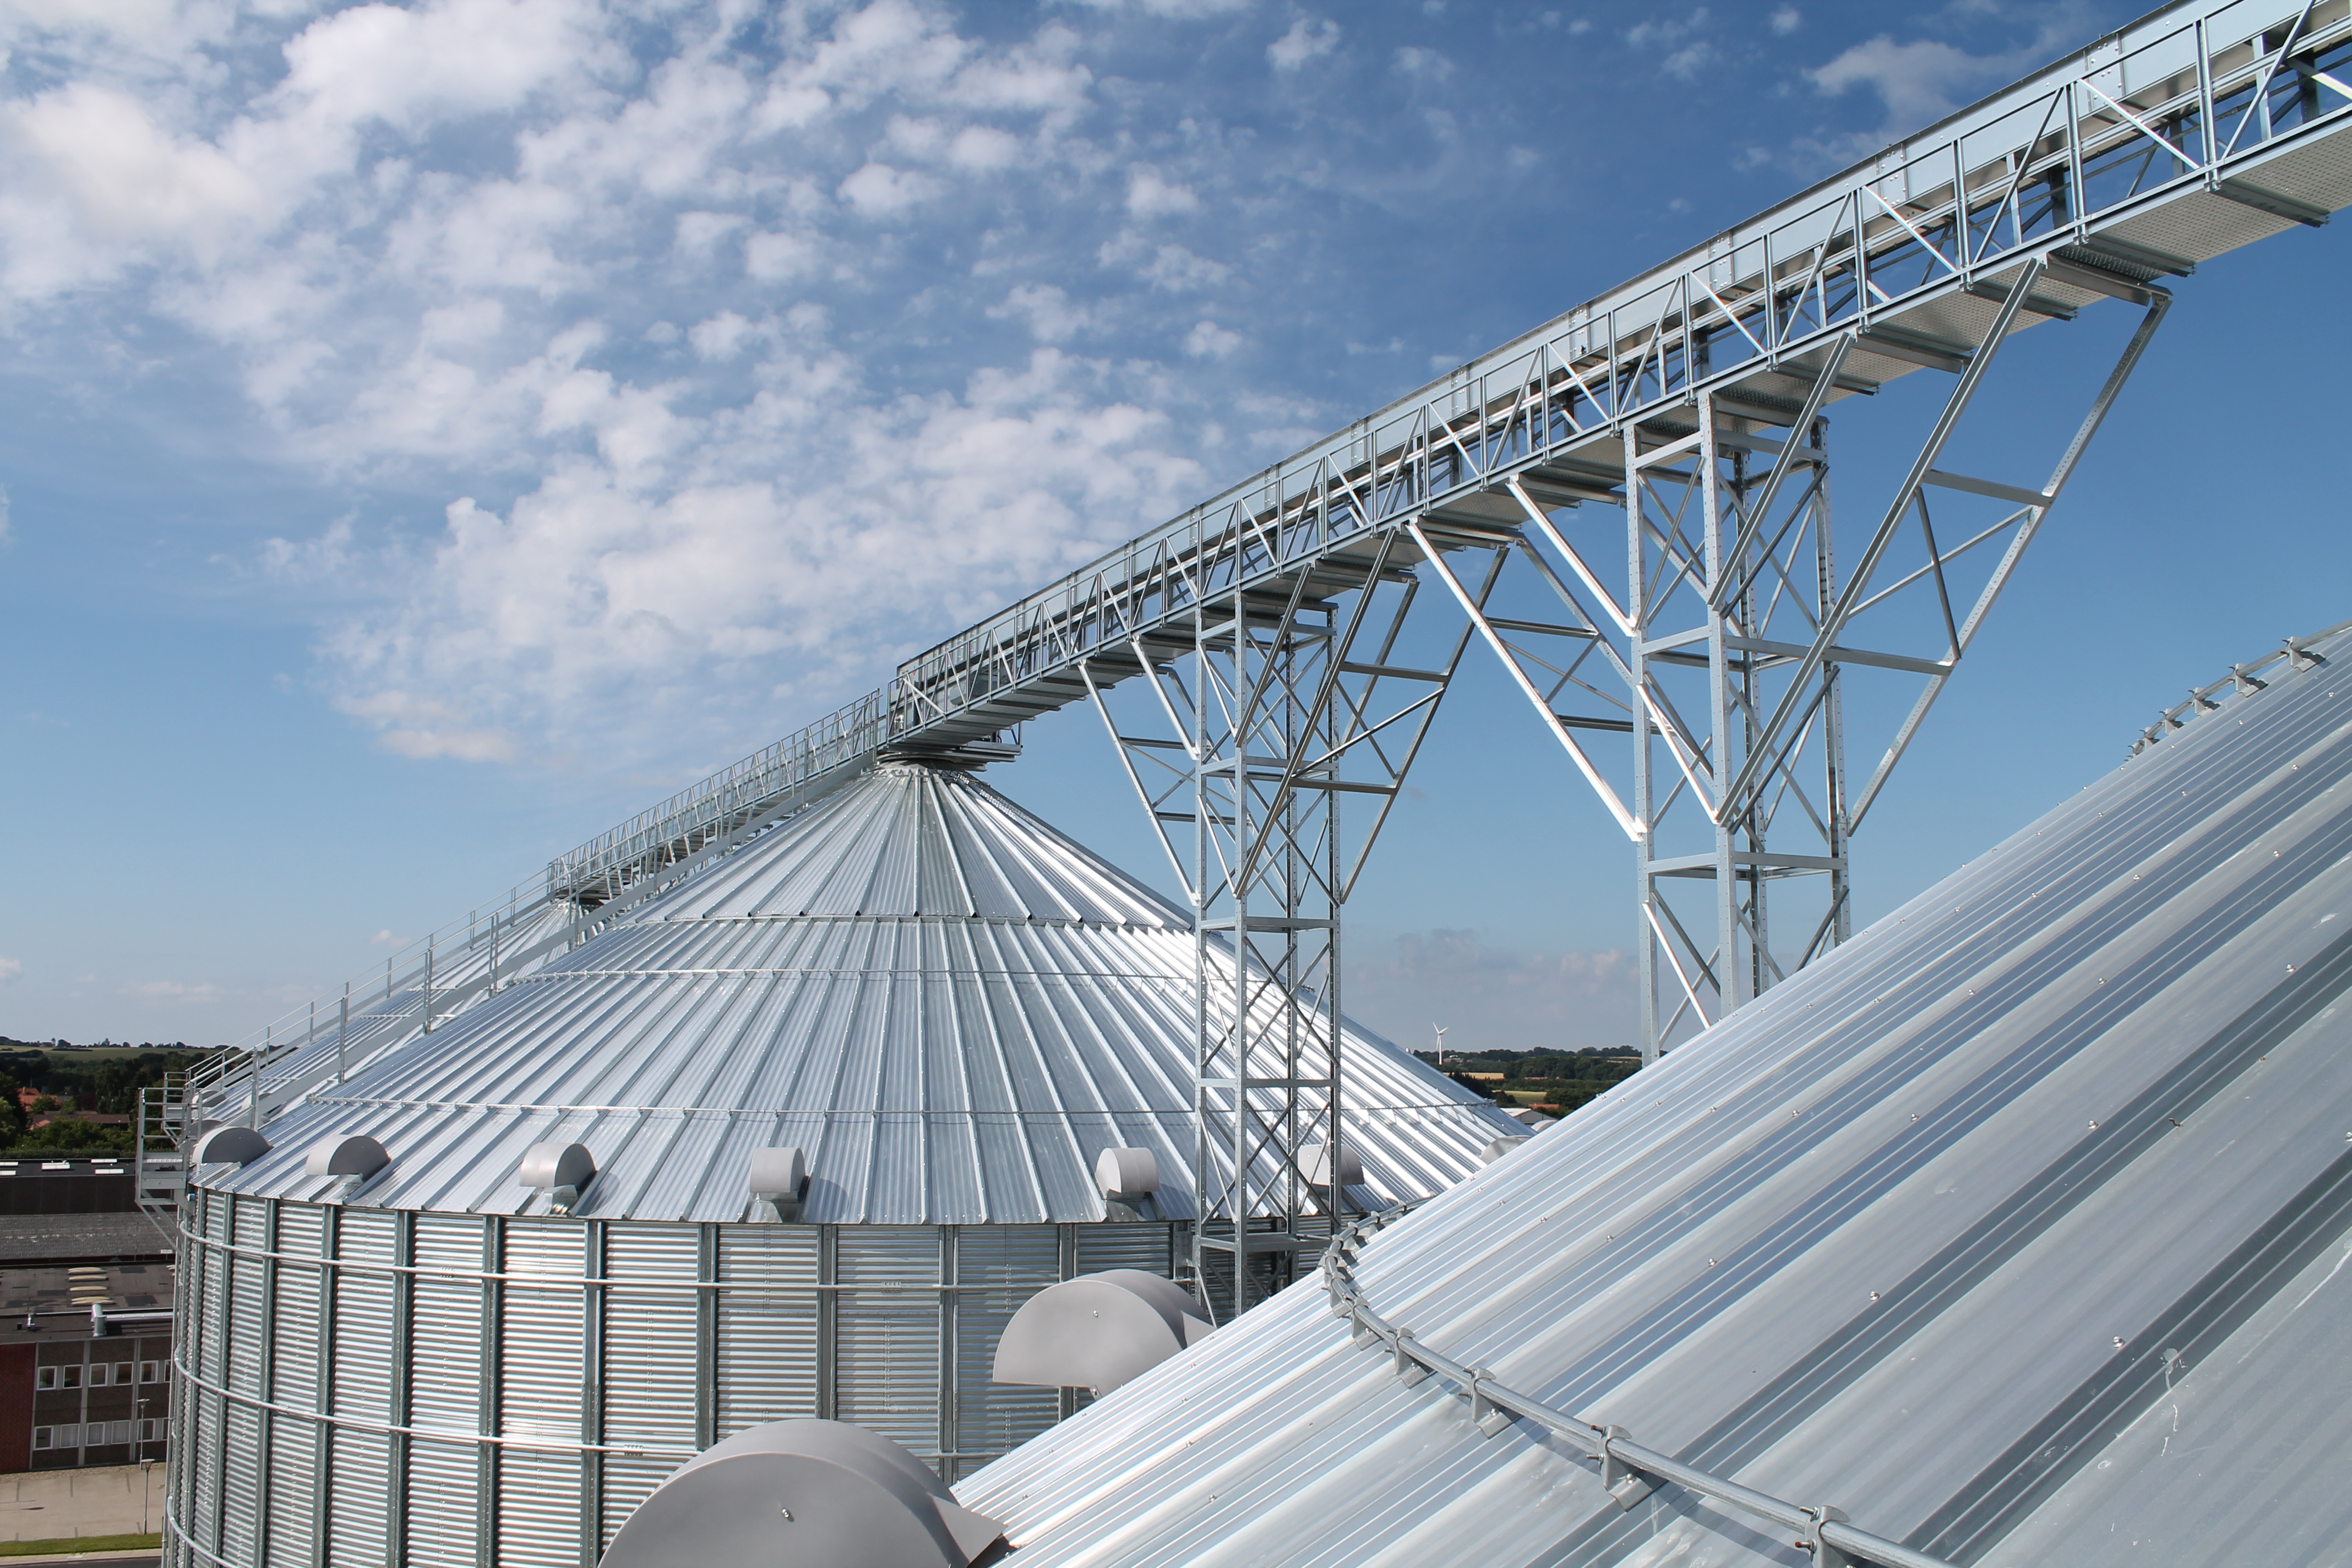 Grain Cleaning and Conveyor Systems - Sukup EU